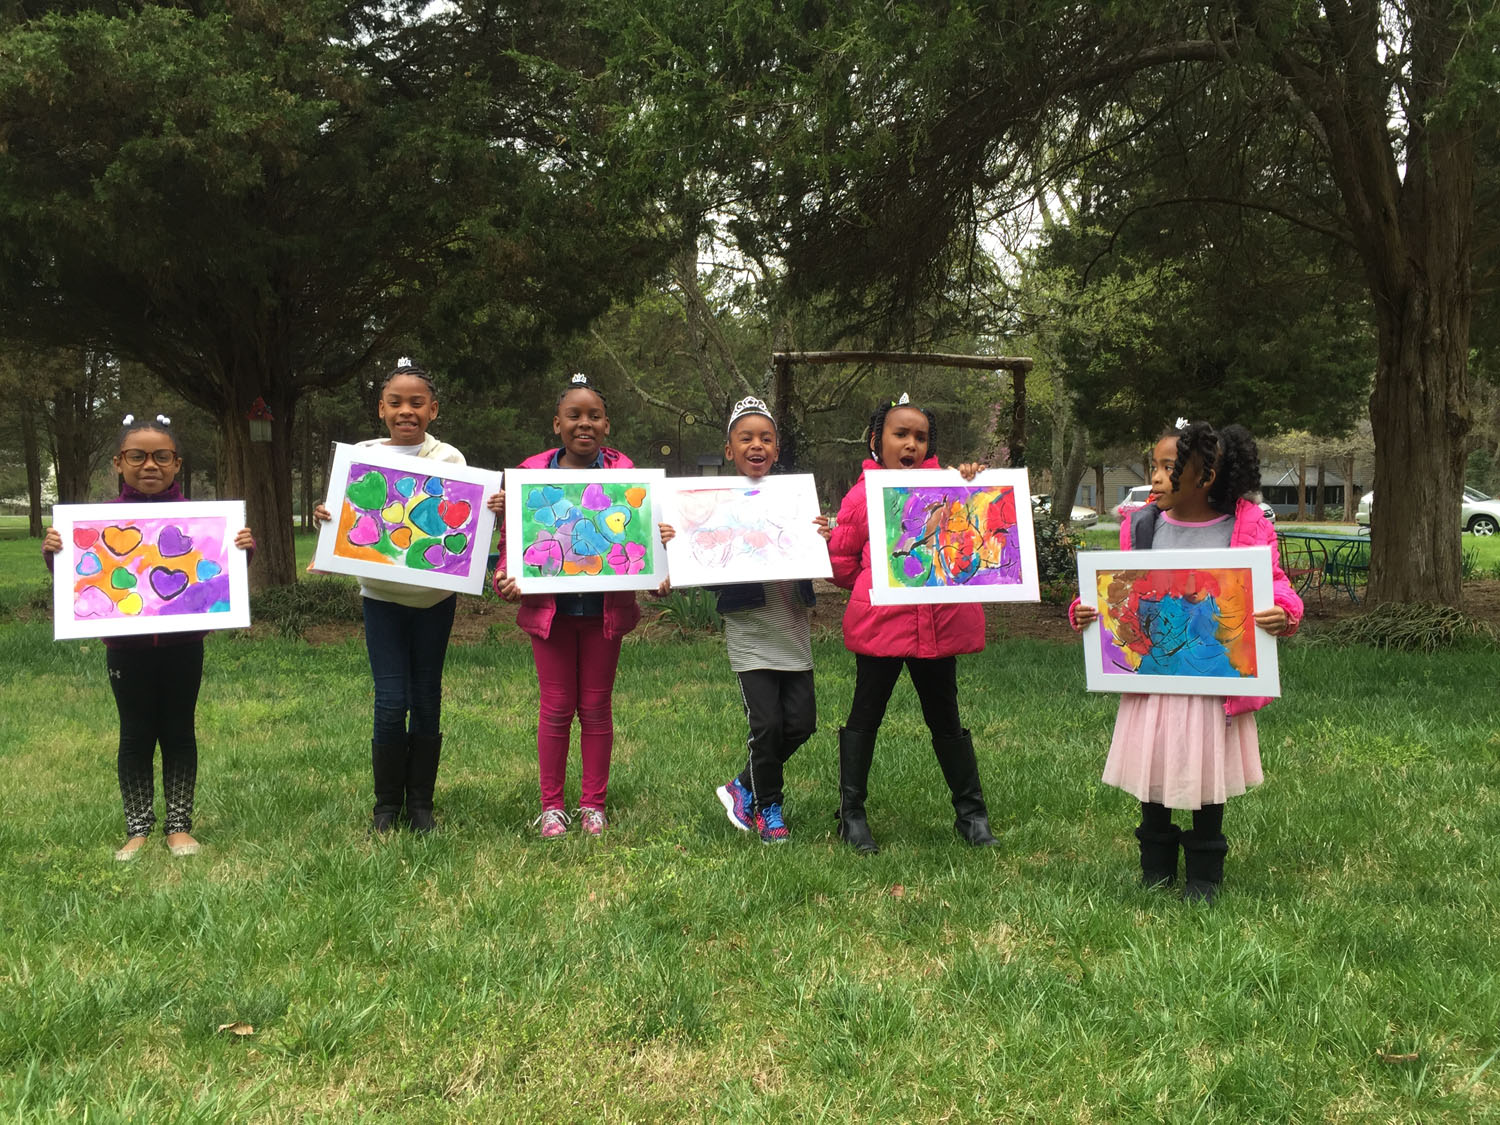 kids-art-parties-classes-and-camps-in-greensboro-nc-with-artist-tracey-j-marshallIMG_3579.jpg